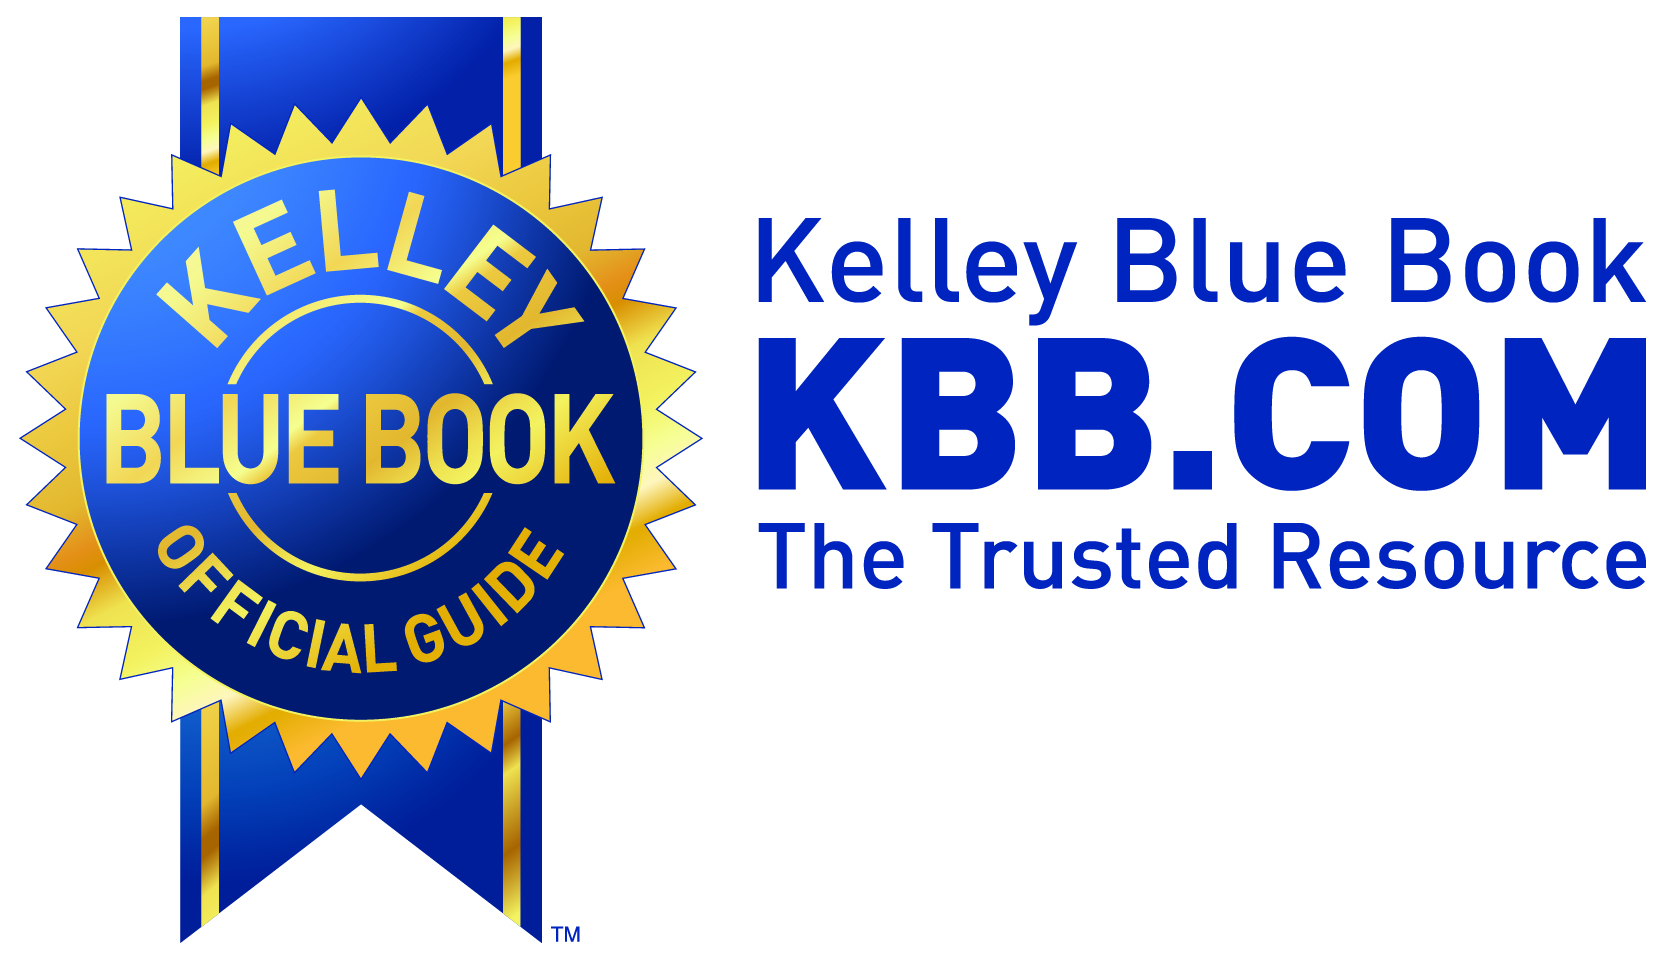 Kbb Atv Values >> Are Kelley Blue Book Values Reliable And Accurate Kelley